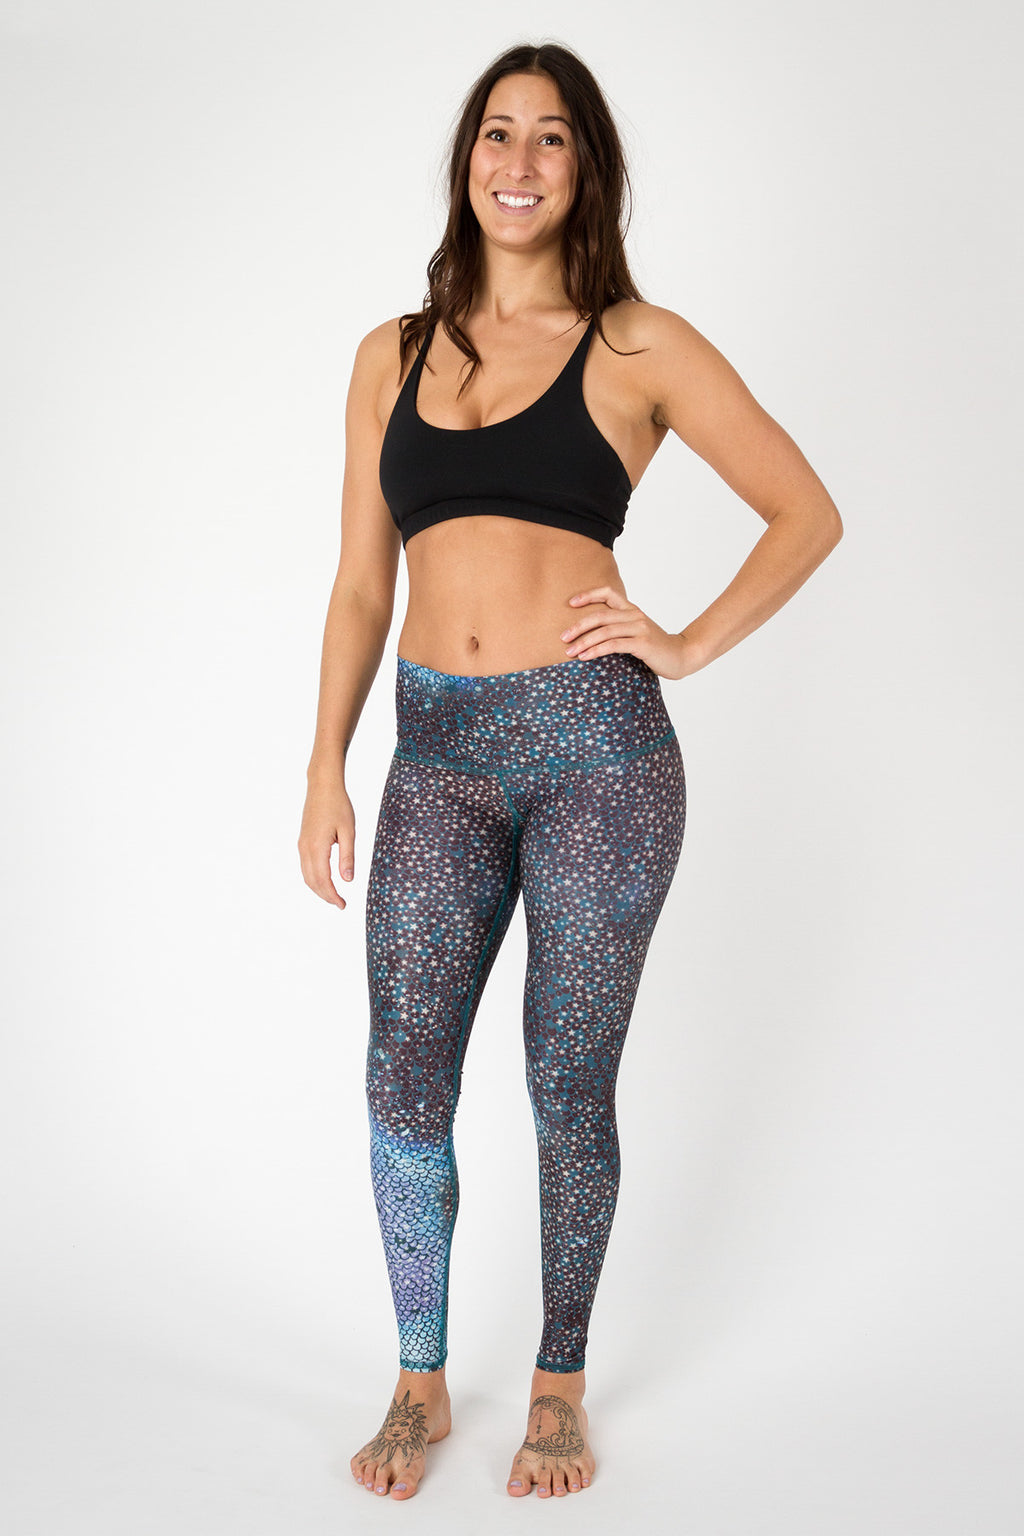 Teeki Mermaid Fairyqueen Hot Pant Sweat Society Canada USA